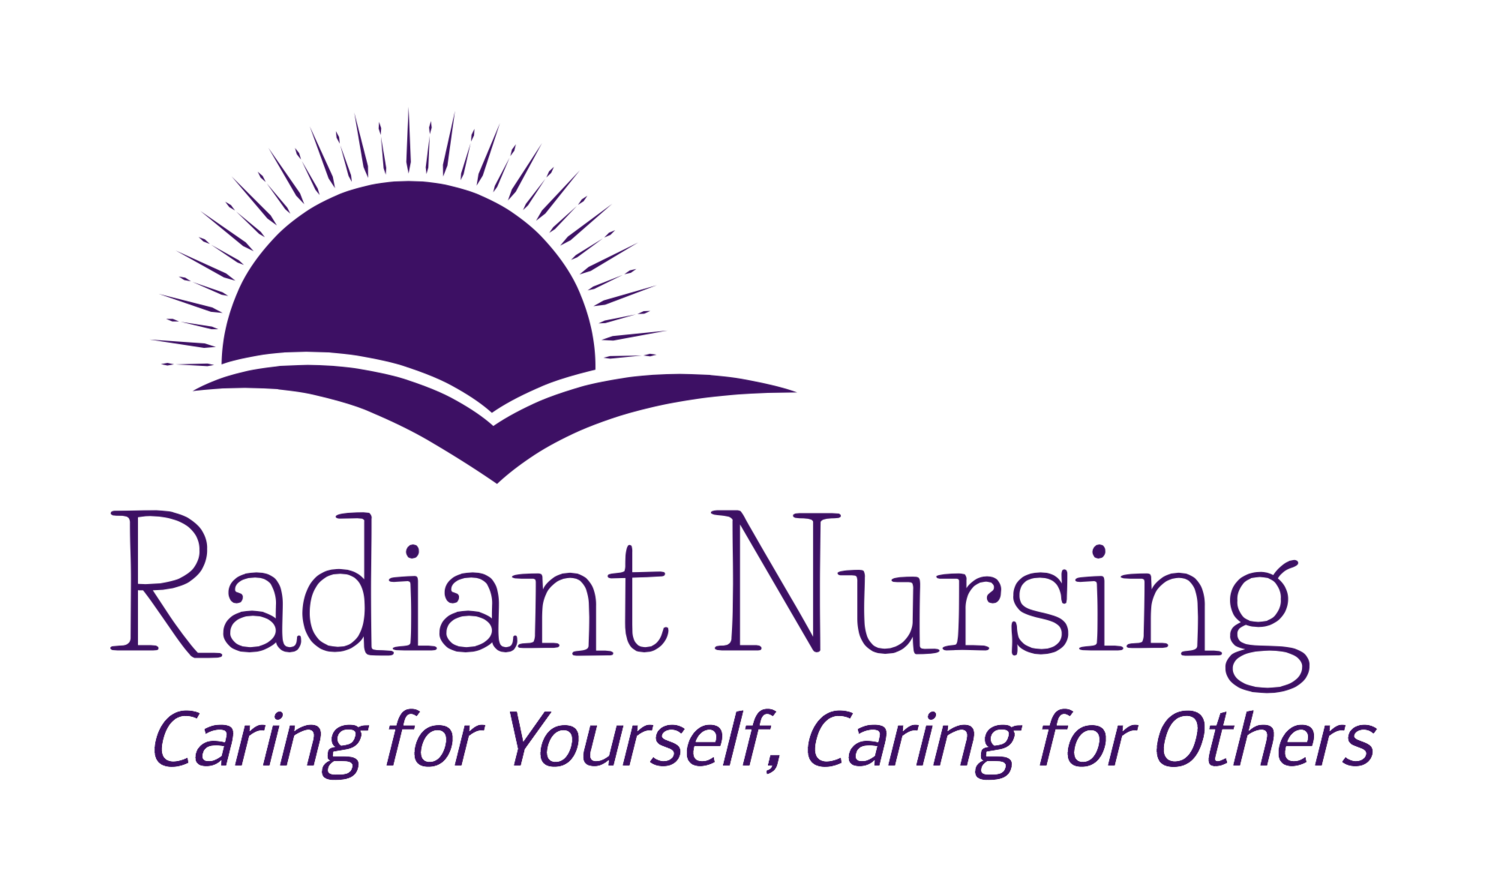 Radiant Nursing